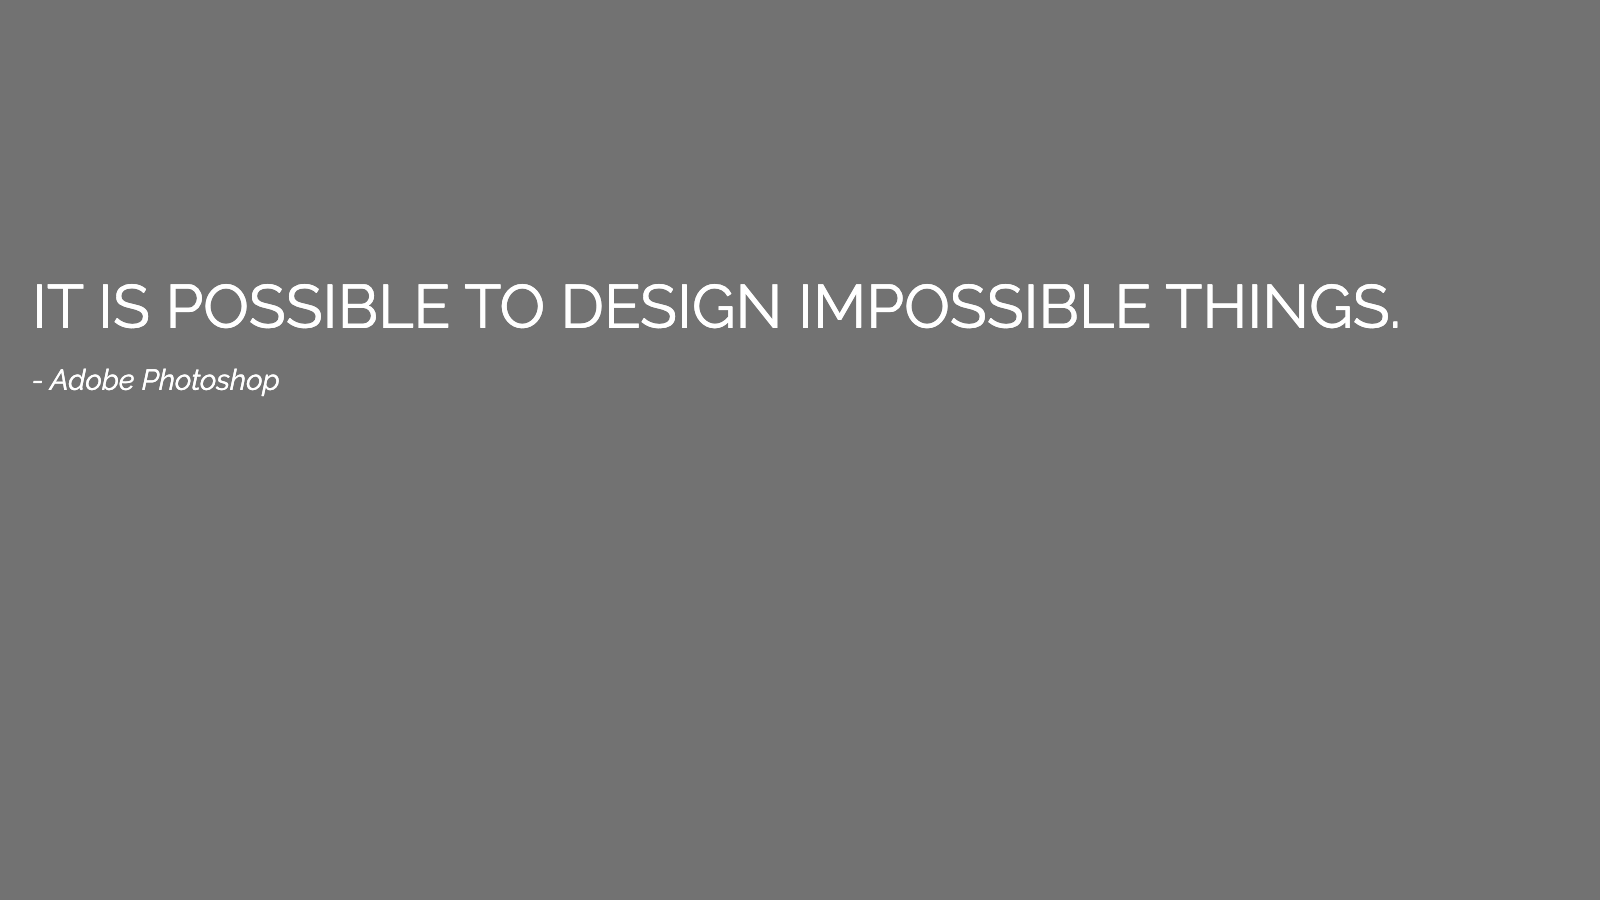 Slide content, It is possible to design impossible things